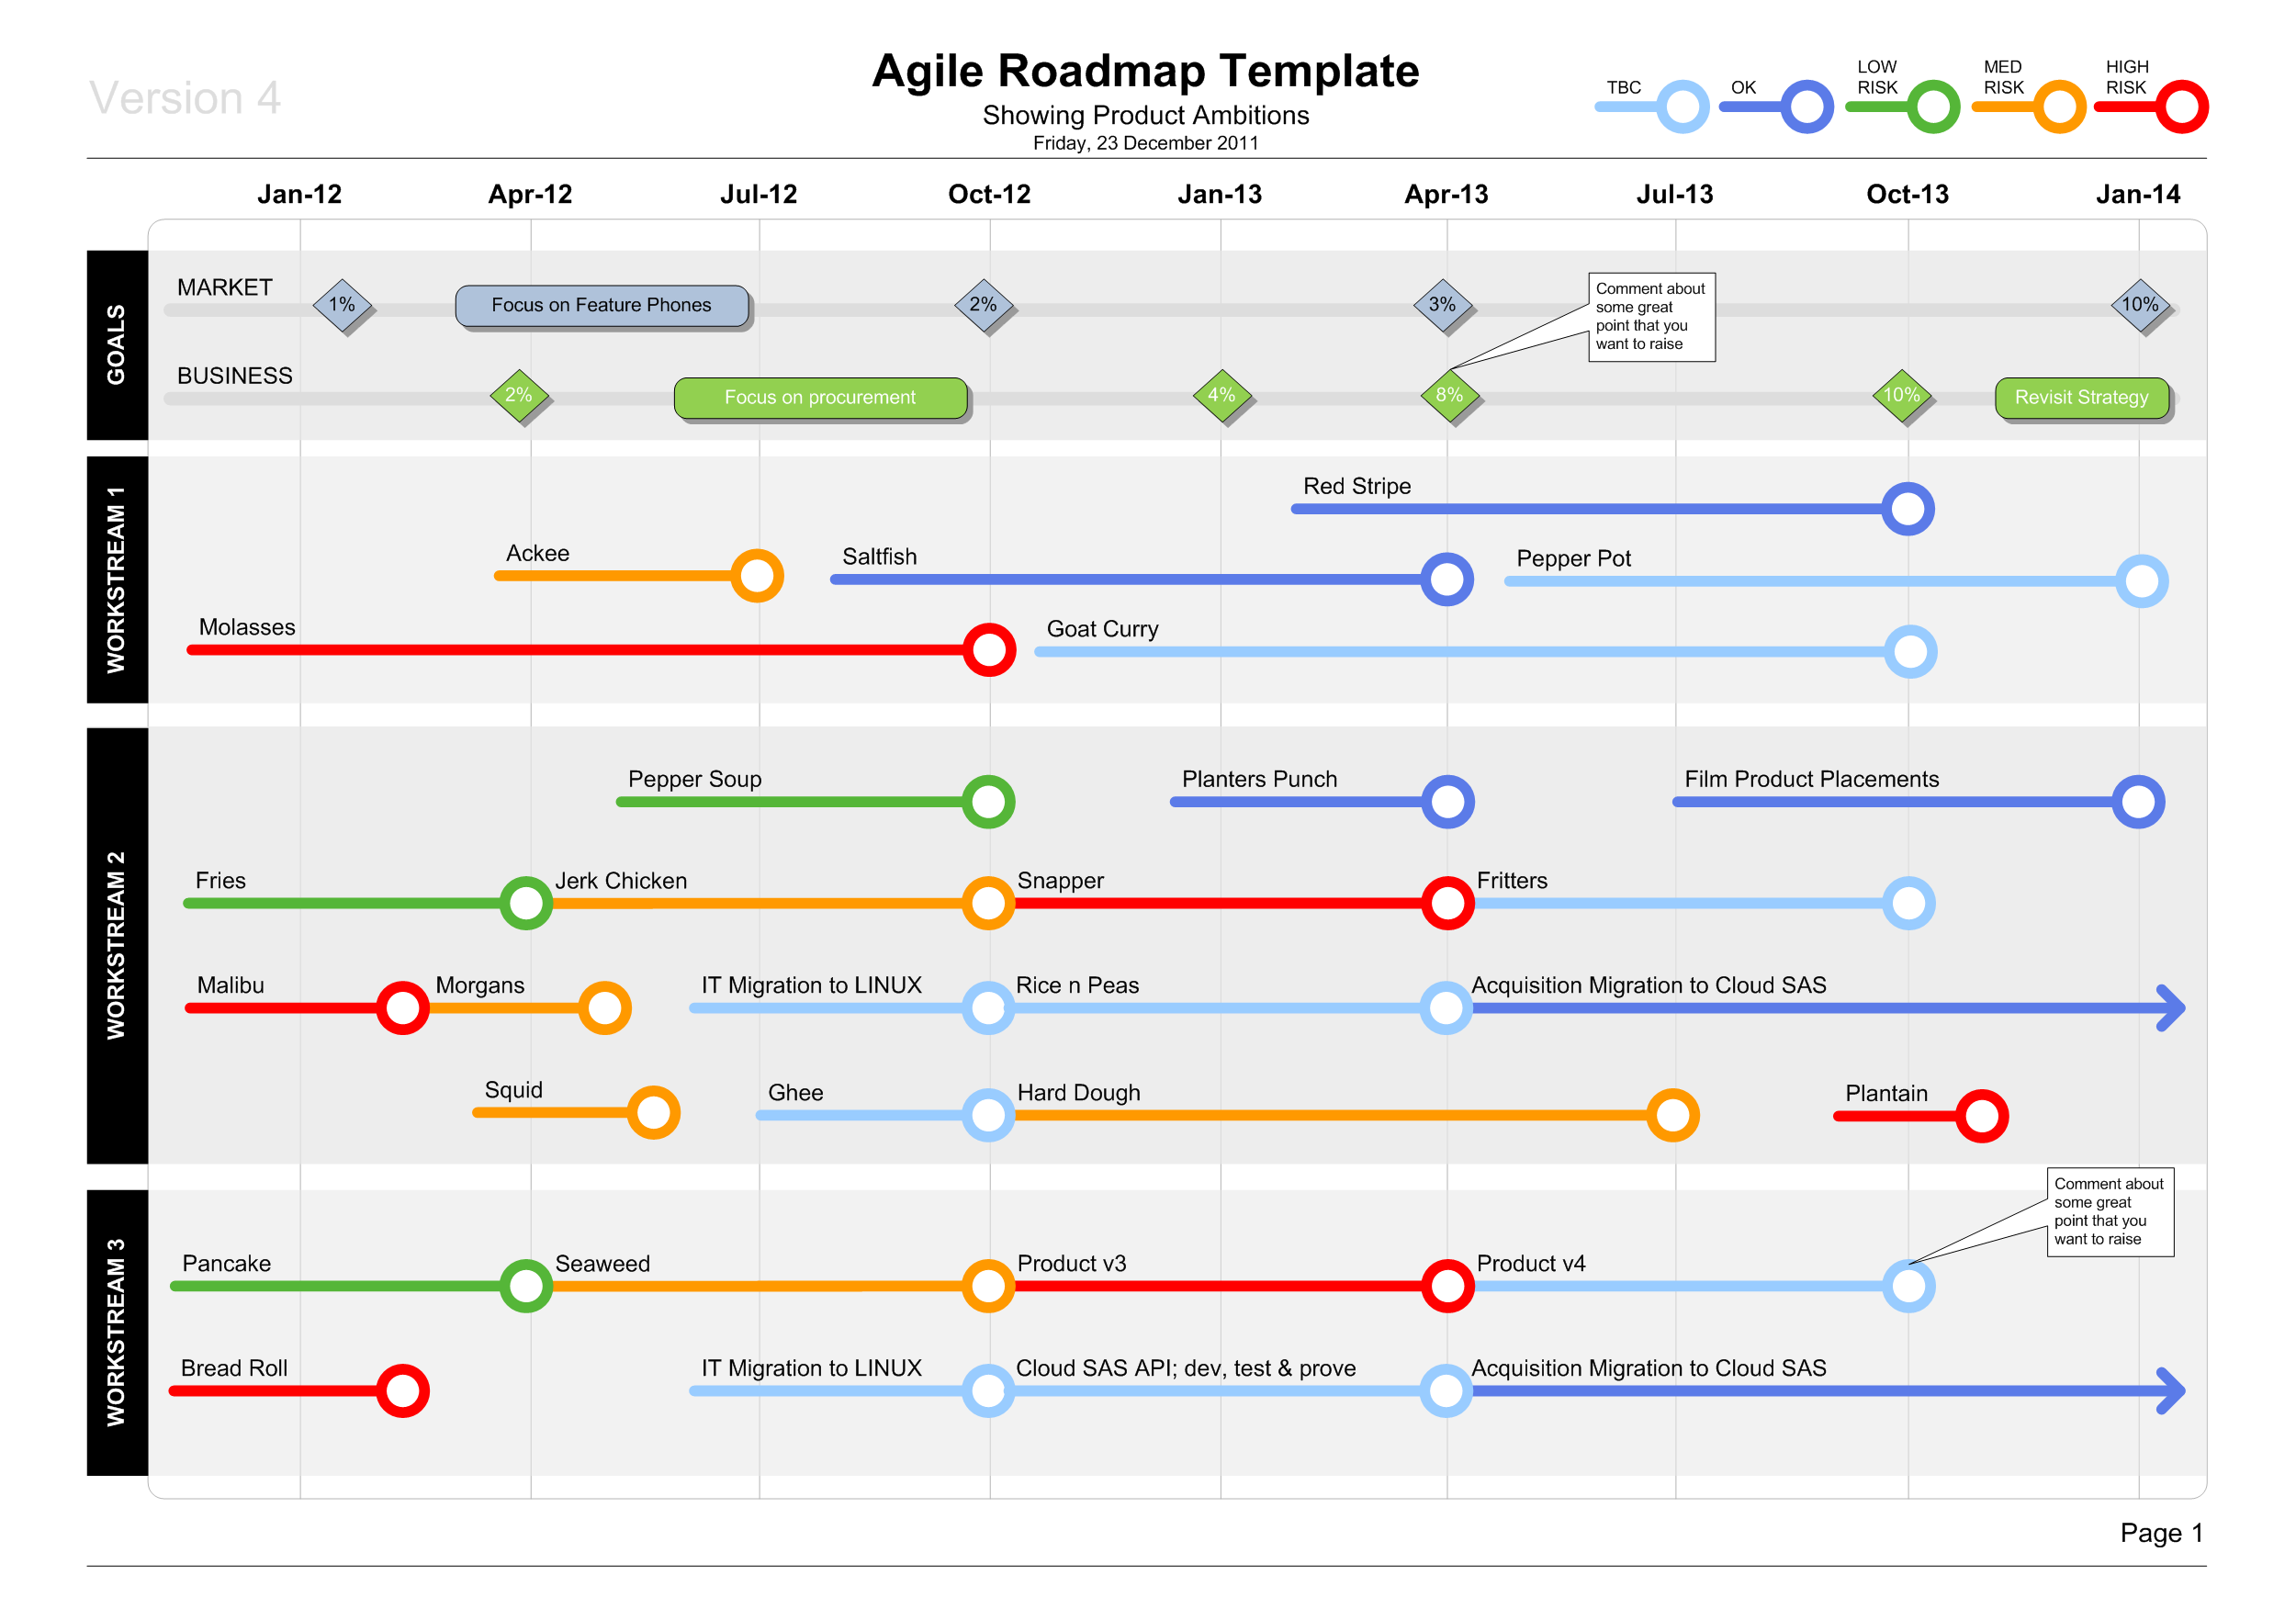 Visio Agile Roadmap Template